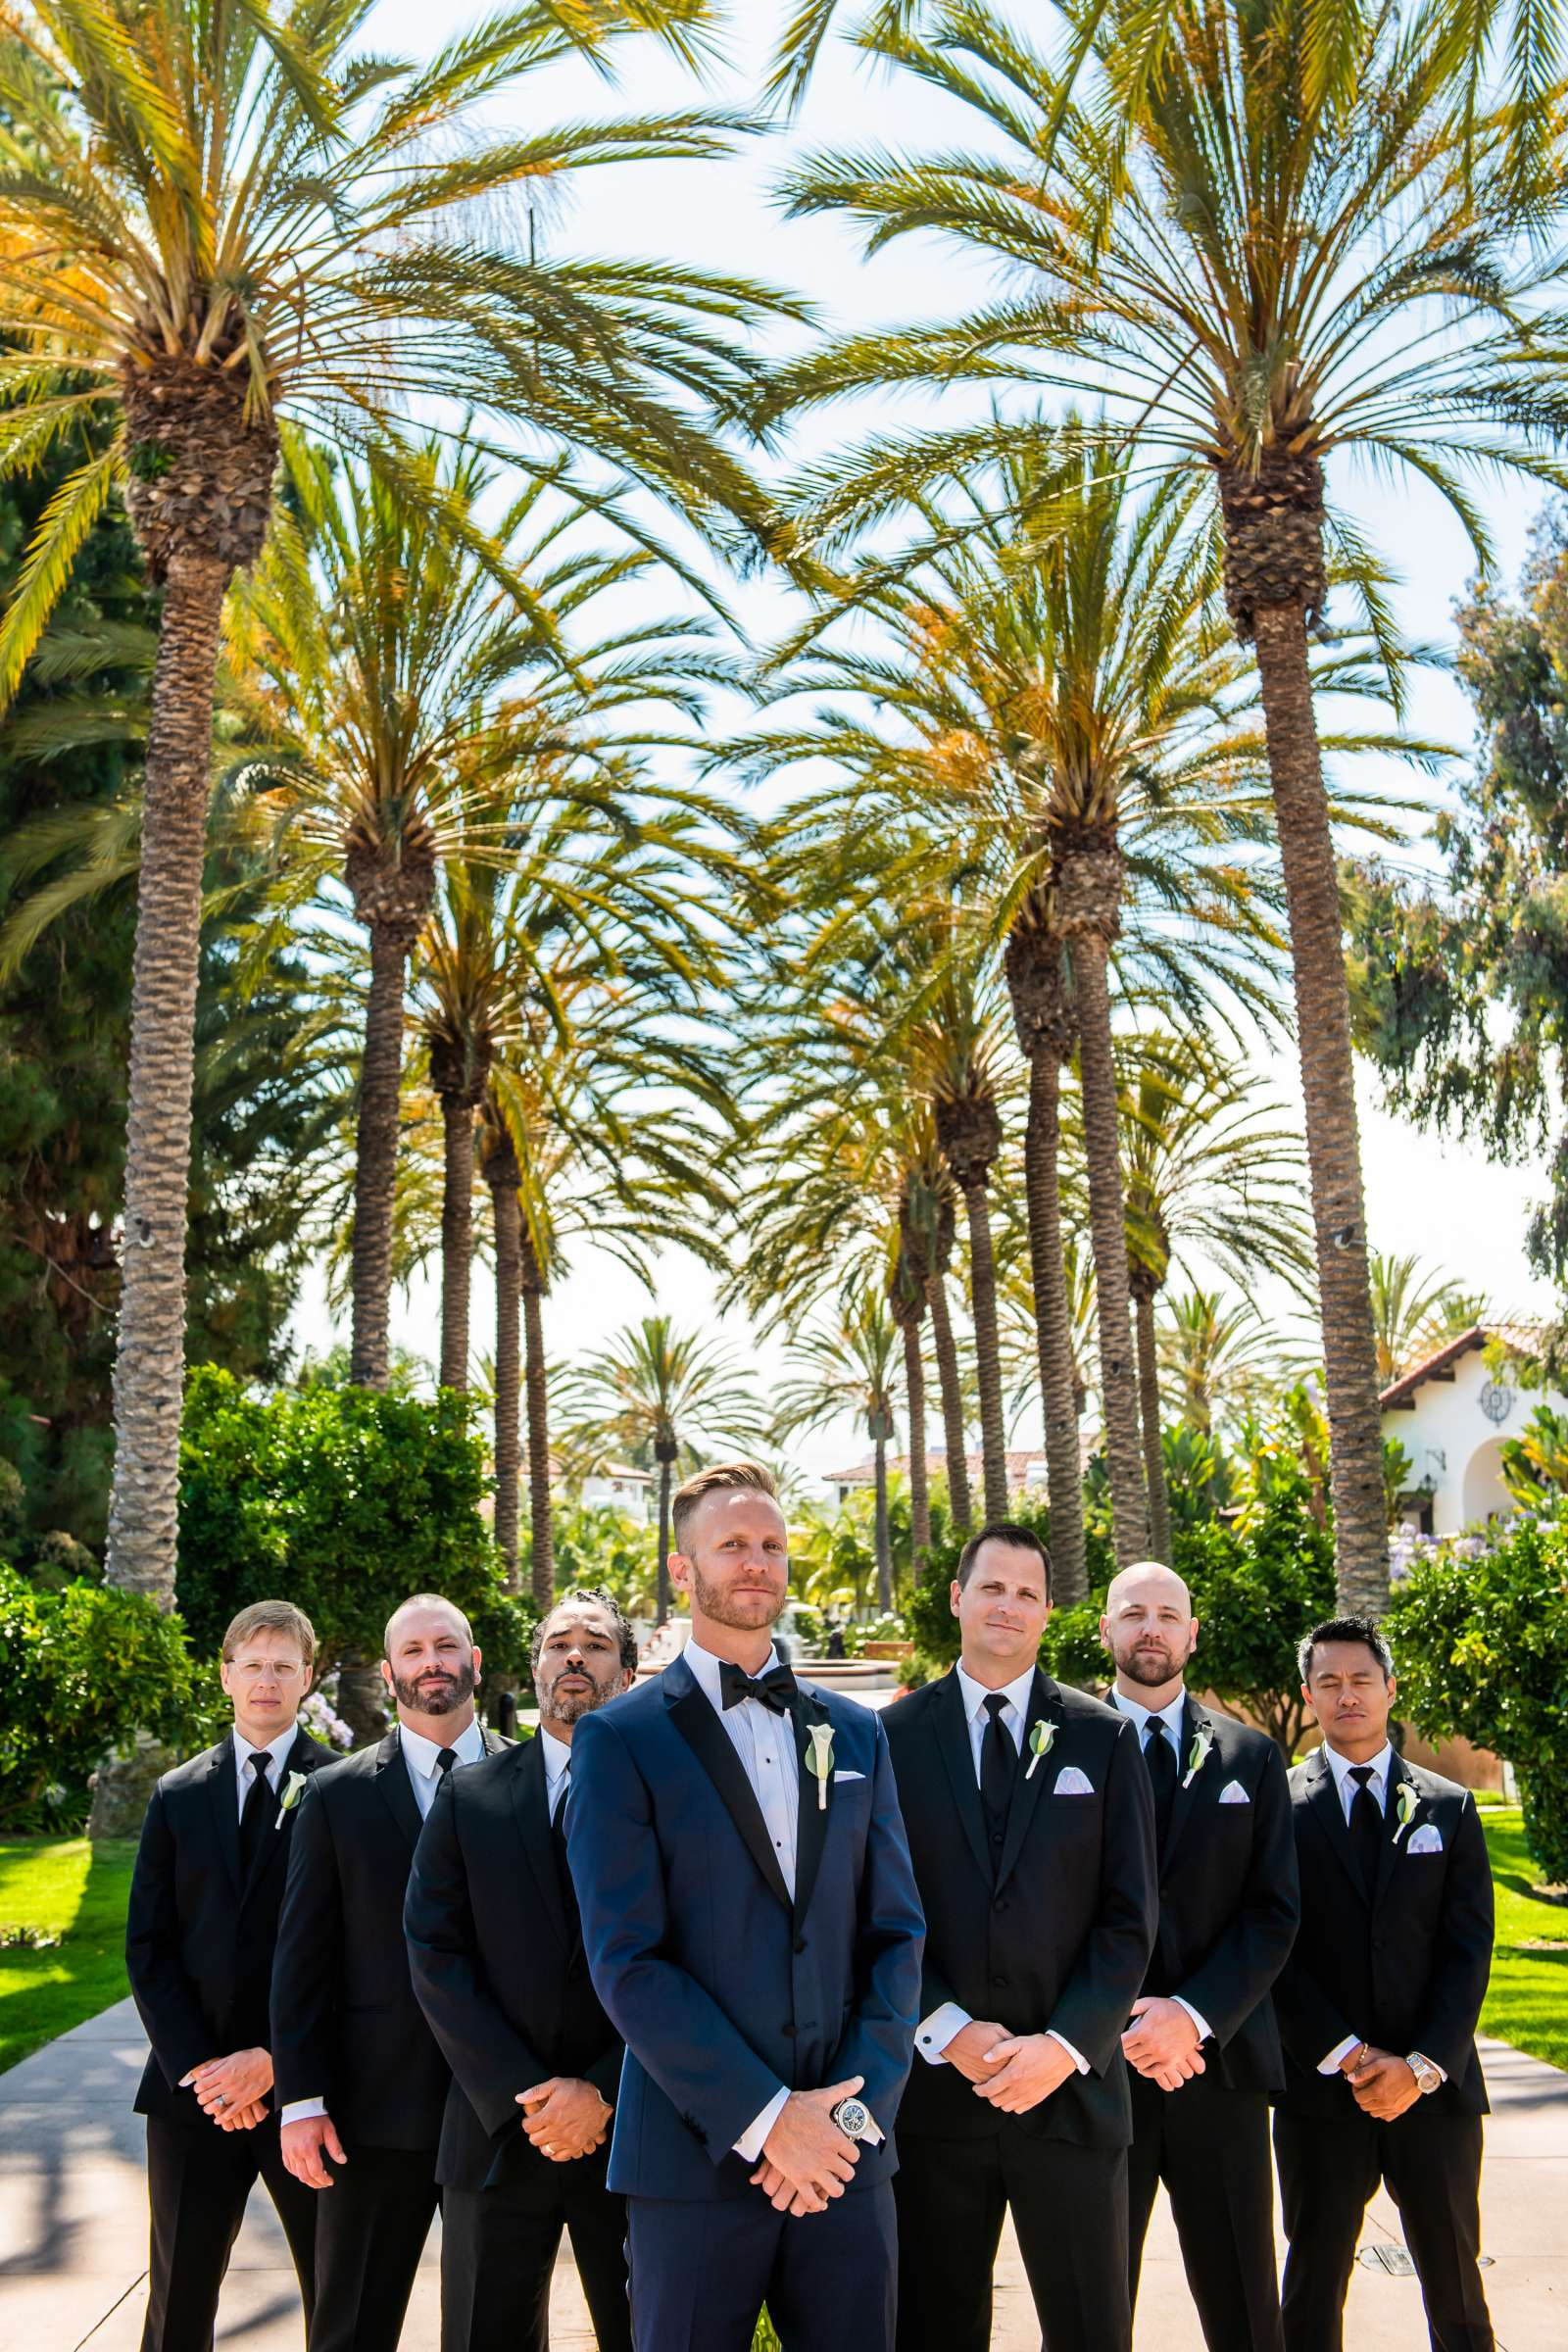 Omni La Costa Resort & Spa Wedding coordinated by SD Weddings by Gina, Randee and Craig Wedding Photo #20 by True Photography